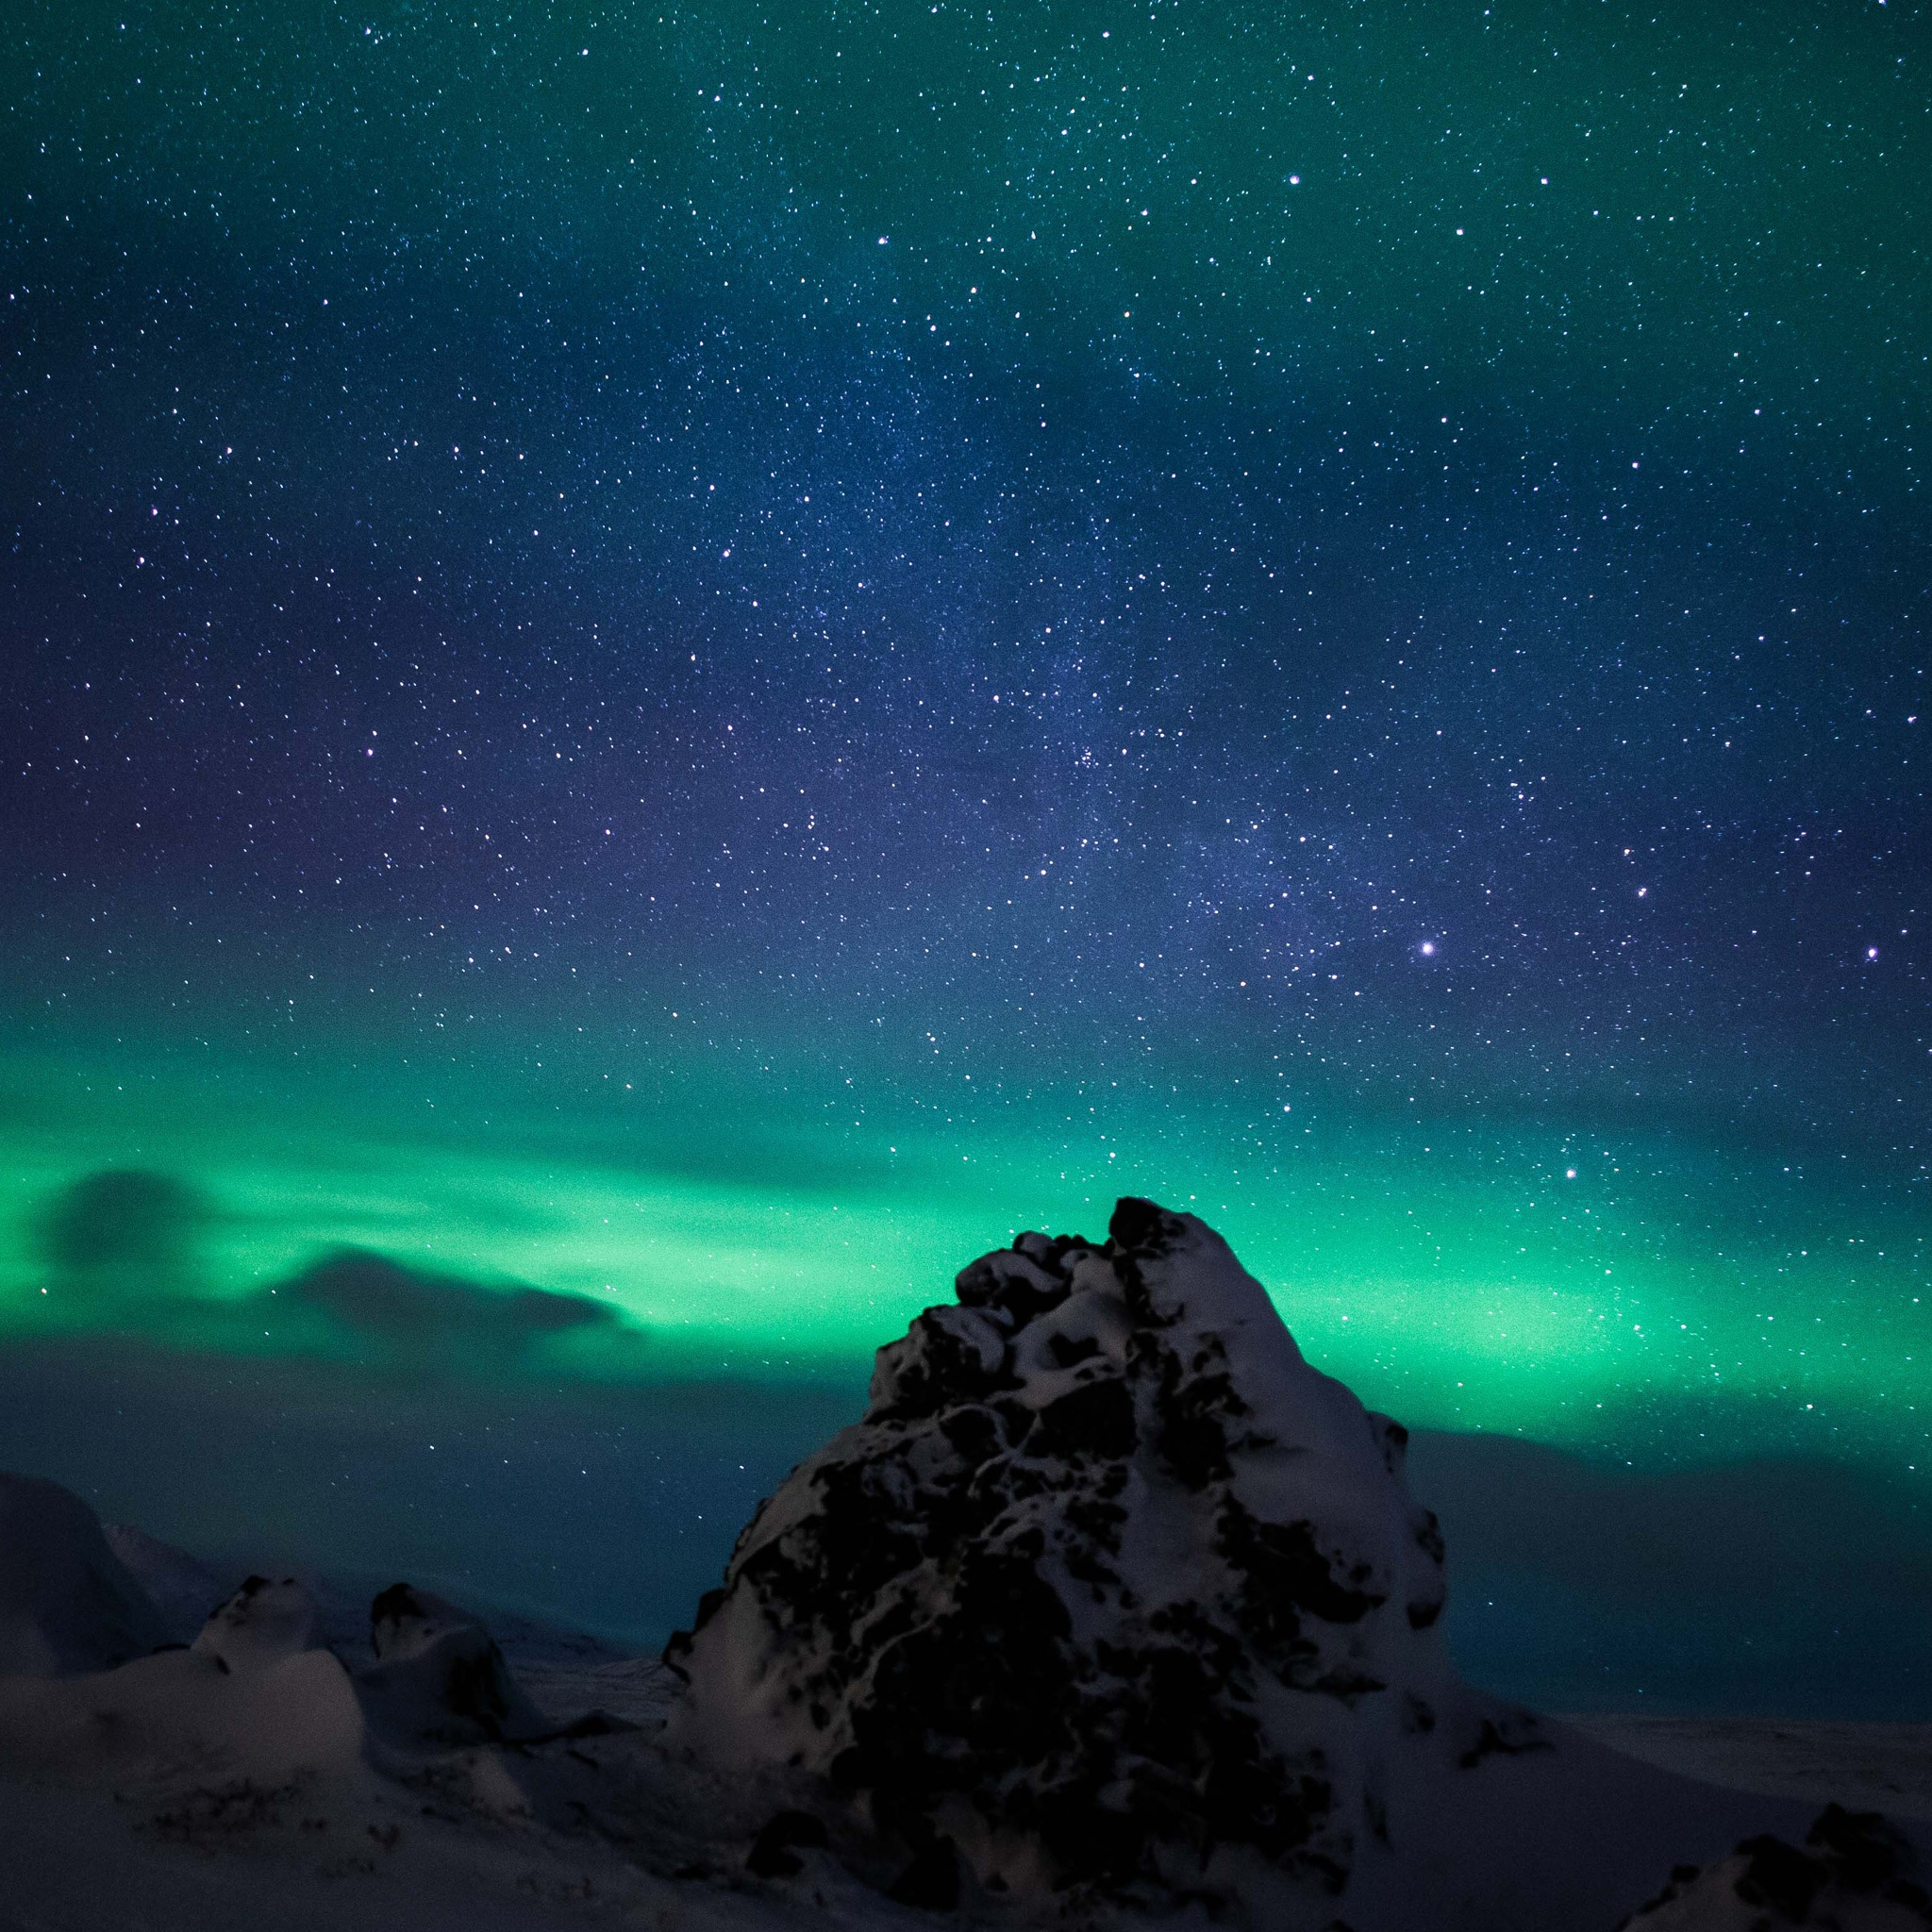 Northern Lights Iceland Aurora Borealis Wallpapers in jpg format for